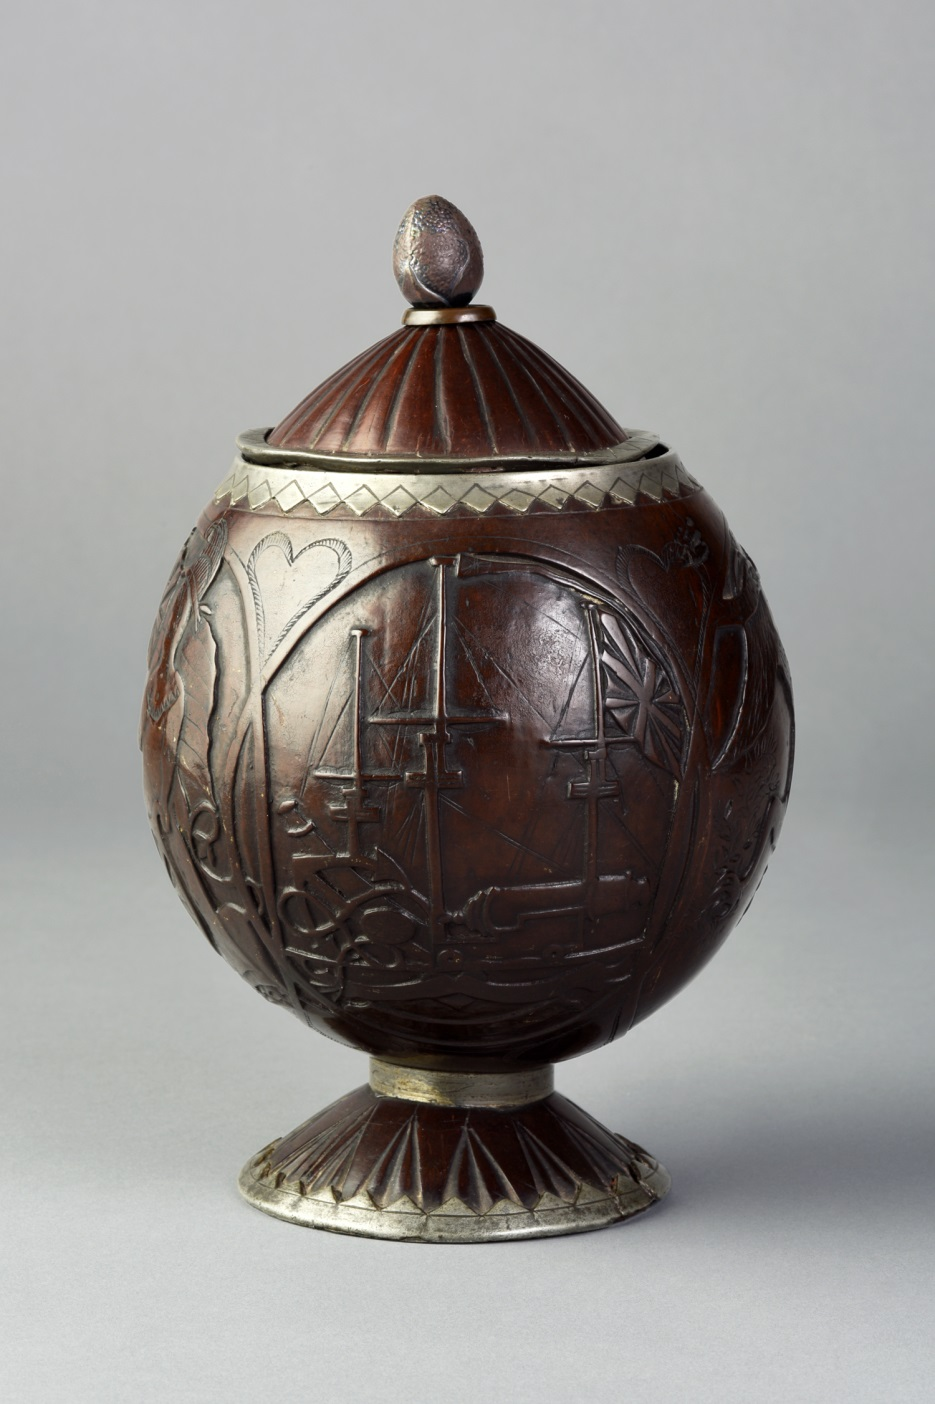 Covered cup, coconut, pewter. Bequest of Henry Francis du Pont 1965.1836